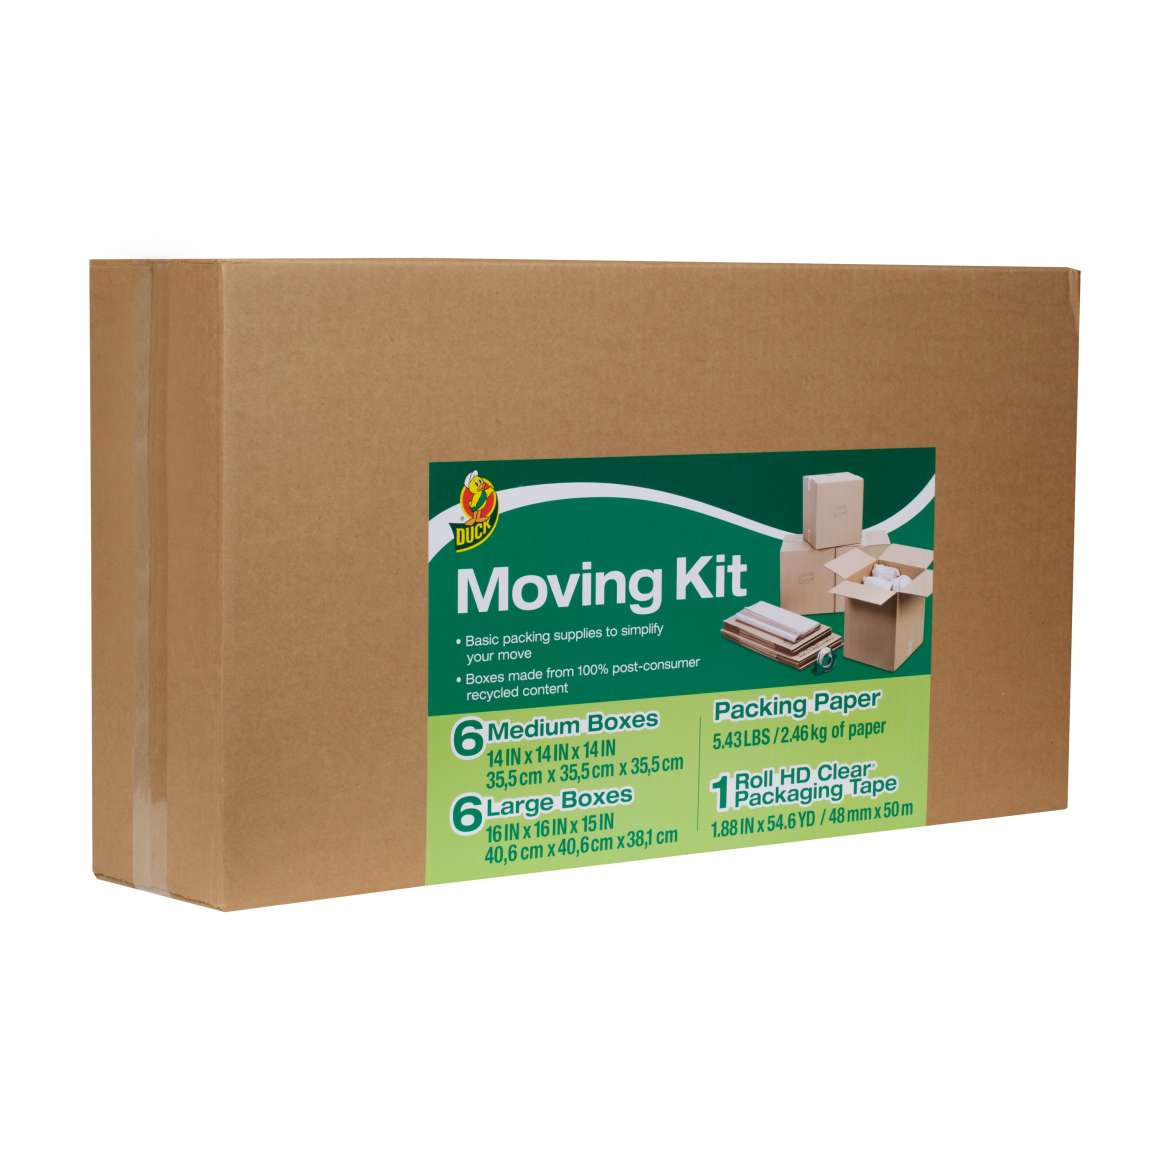 Moving Kit Image